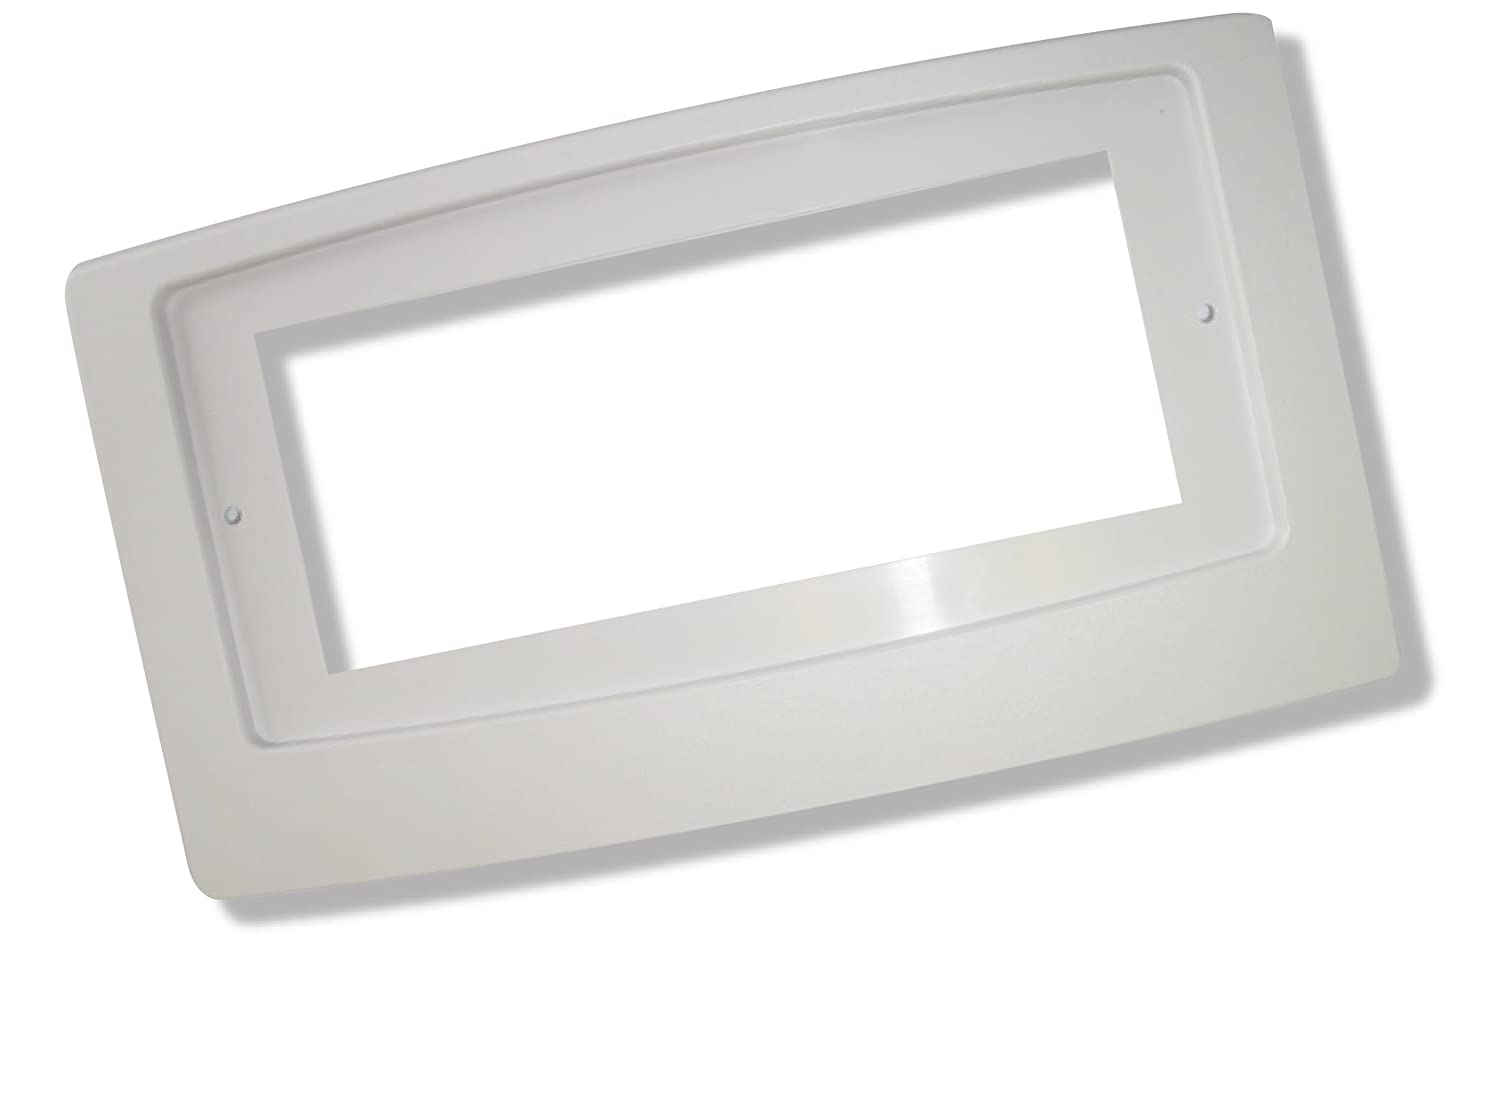 Amazon.com: Vents & Deck Plates - Boat Cabin Products: Sports & Outdoors